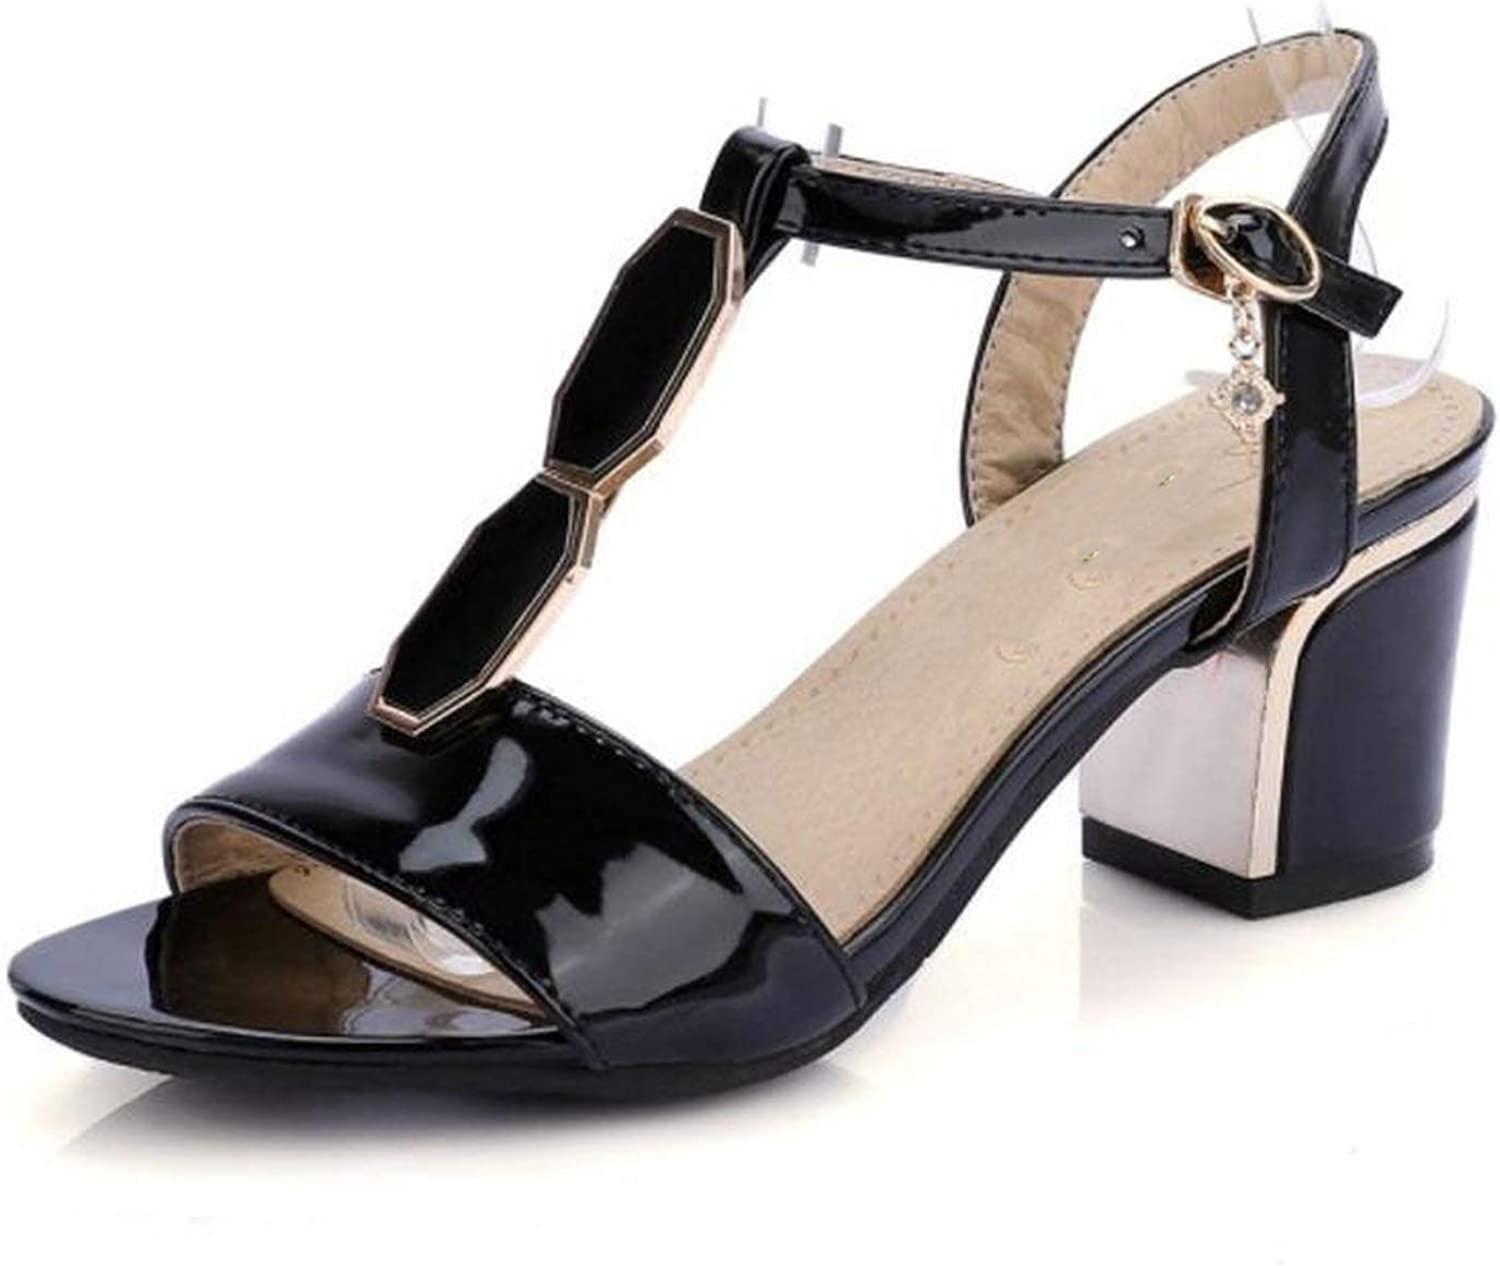 Fairly shoes Squared Heels Thin Belt Patent Leather Summer shoes Fashion Sexy shoes,Black,3